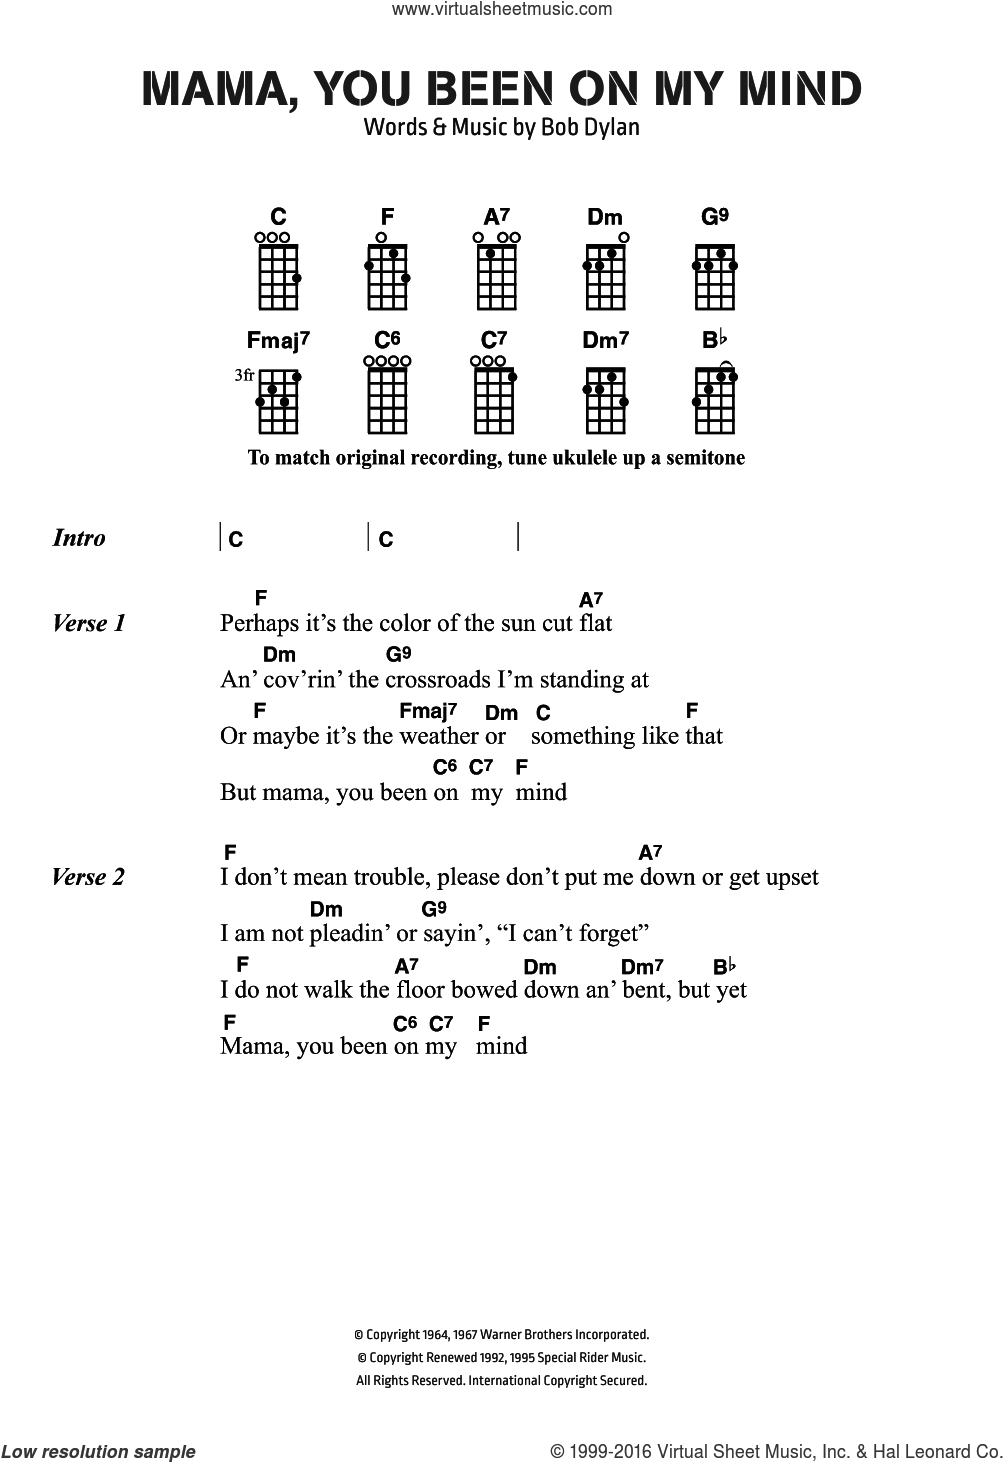 Mama, You Been On My Mind sheet music for ukulele (chords) by Bob Dylan, intermediate skill level